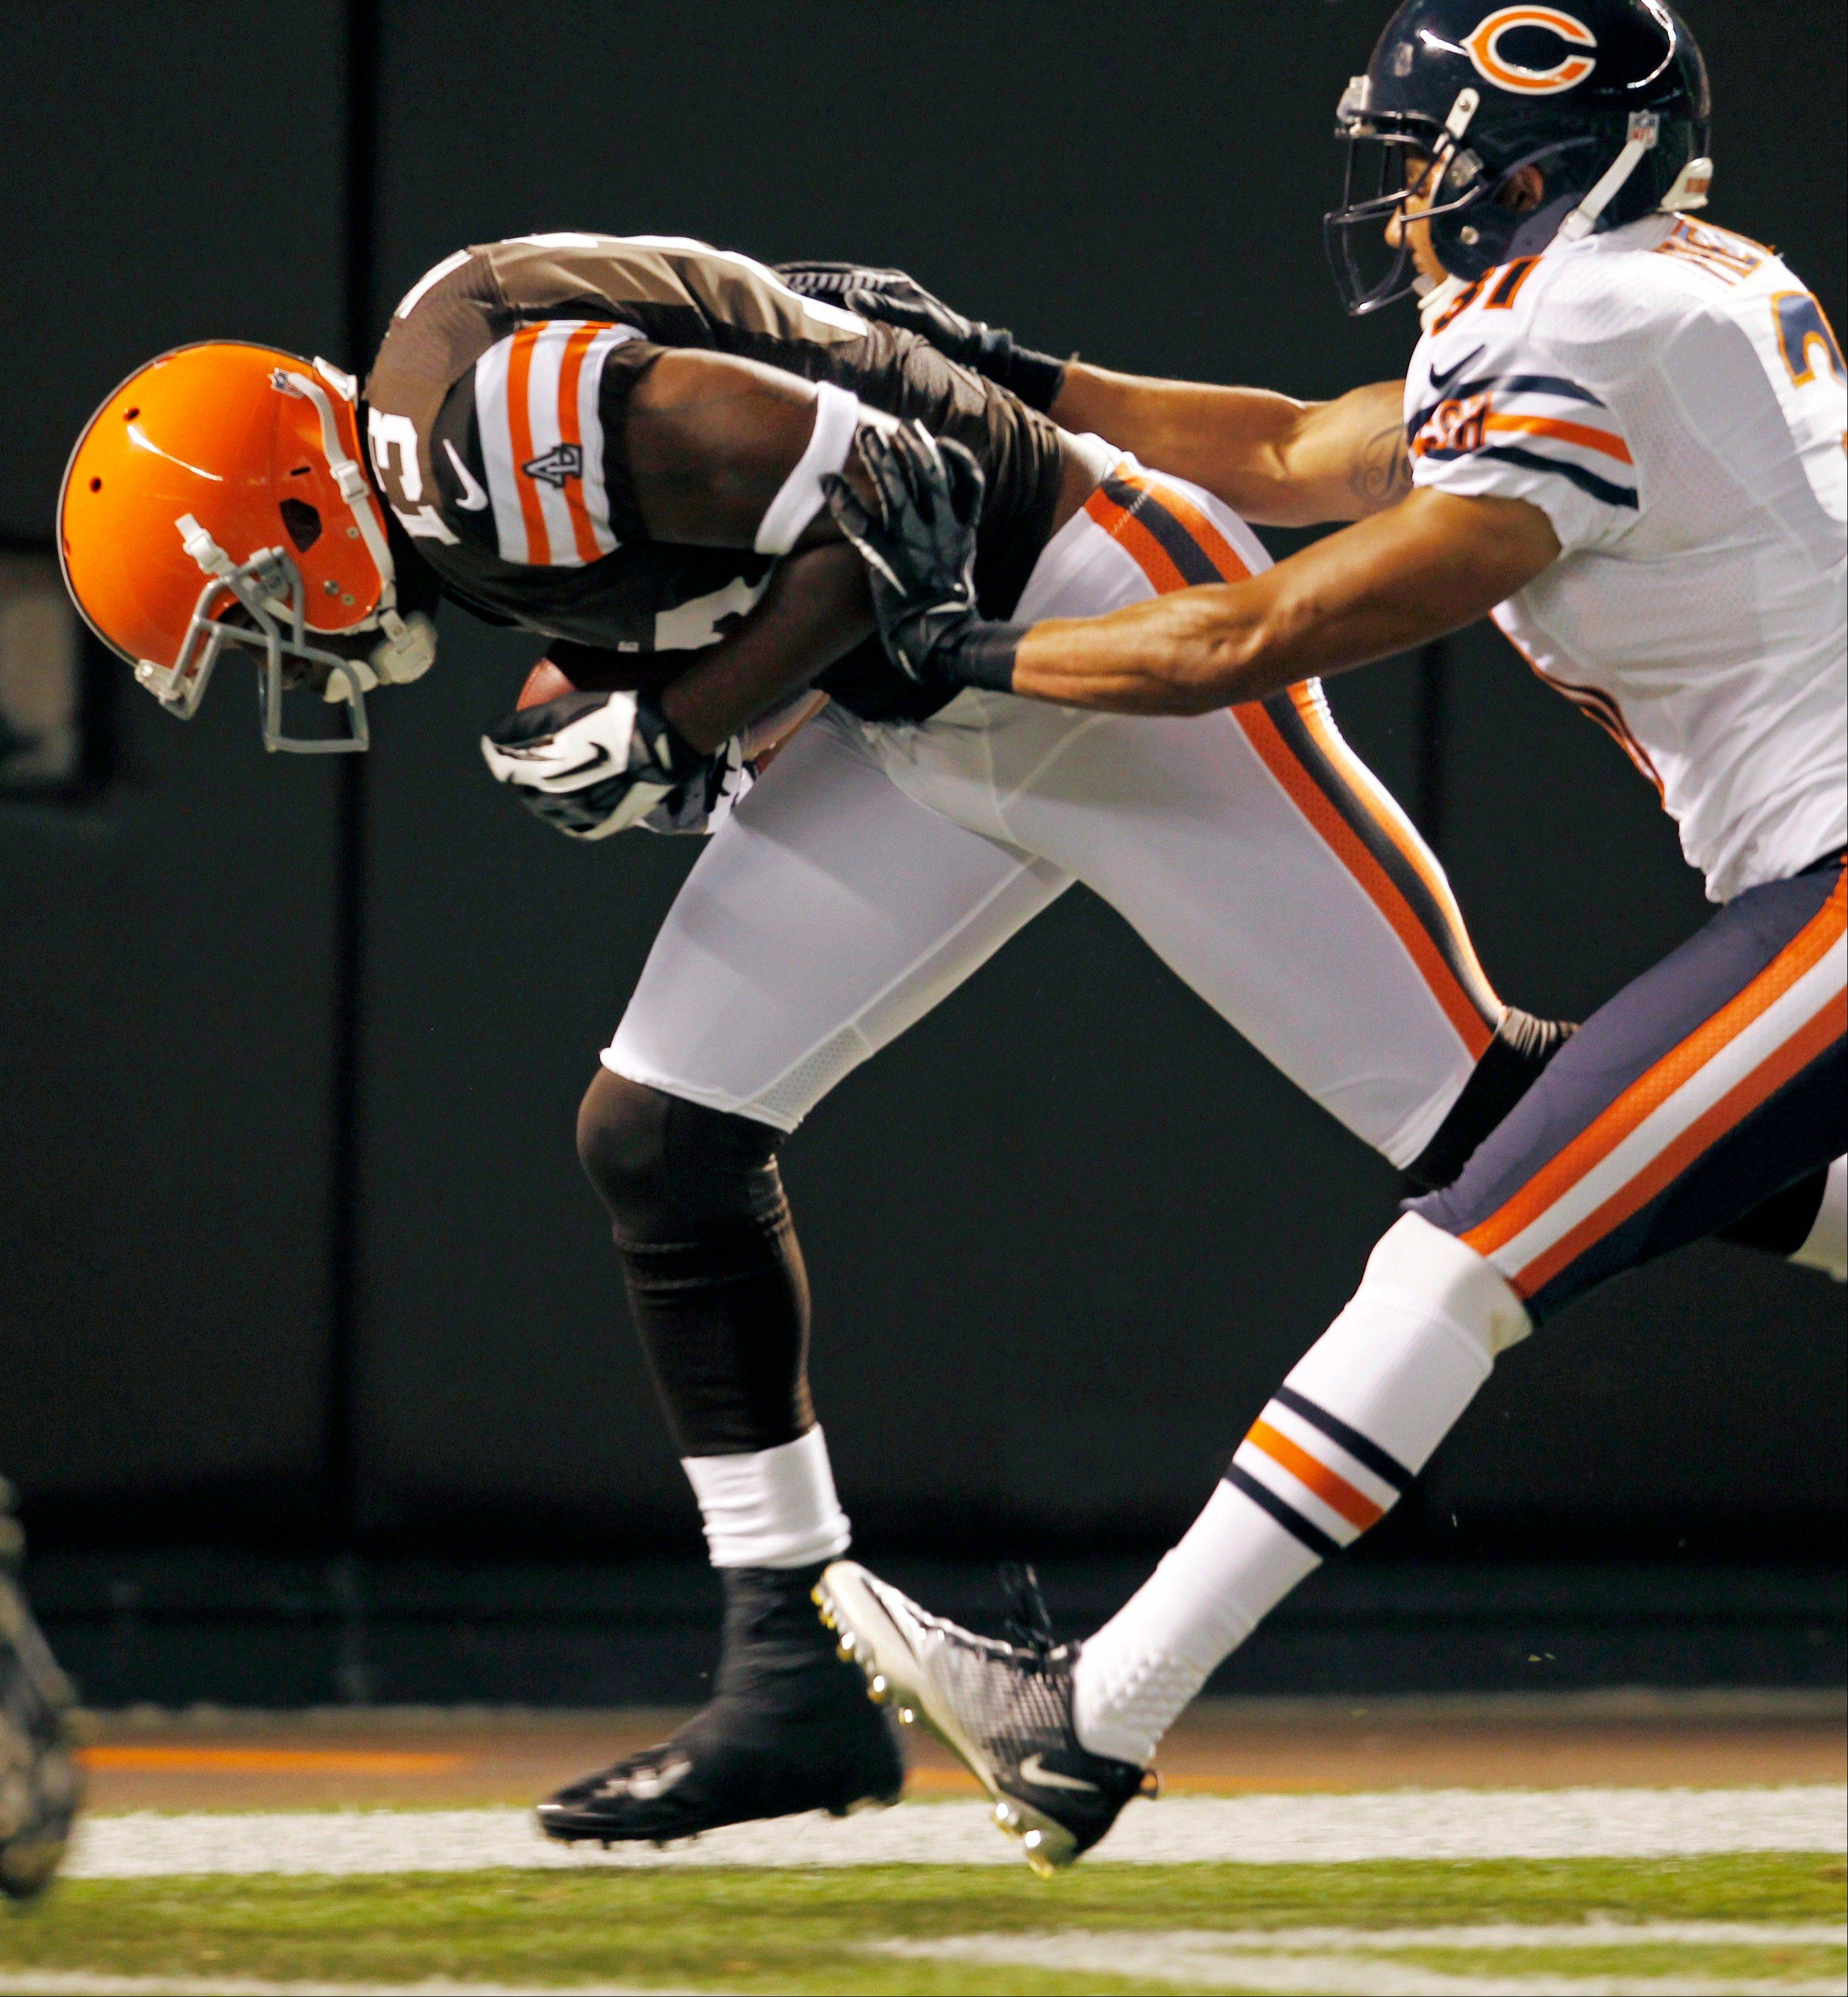 Cleveland Browns wide receiver Rod Windsor runs in for a 2-yard touchdown under pressure from Chicago Bears cornerback Isaiah Frey in the second quarter in a preseason NFL football game Thursday, Aug. 30, 2012, in Cleveland.